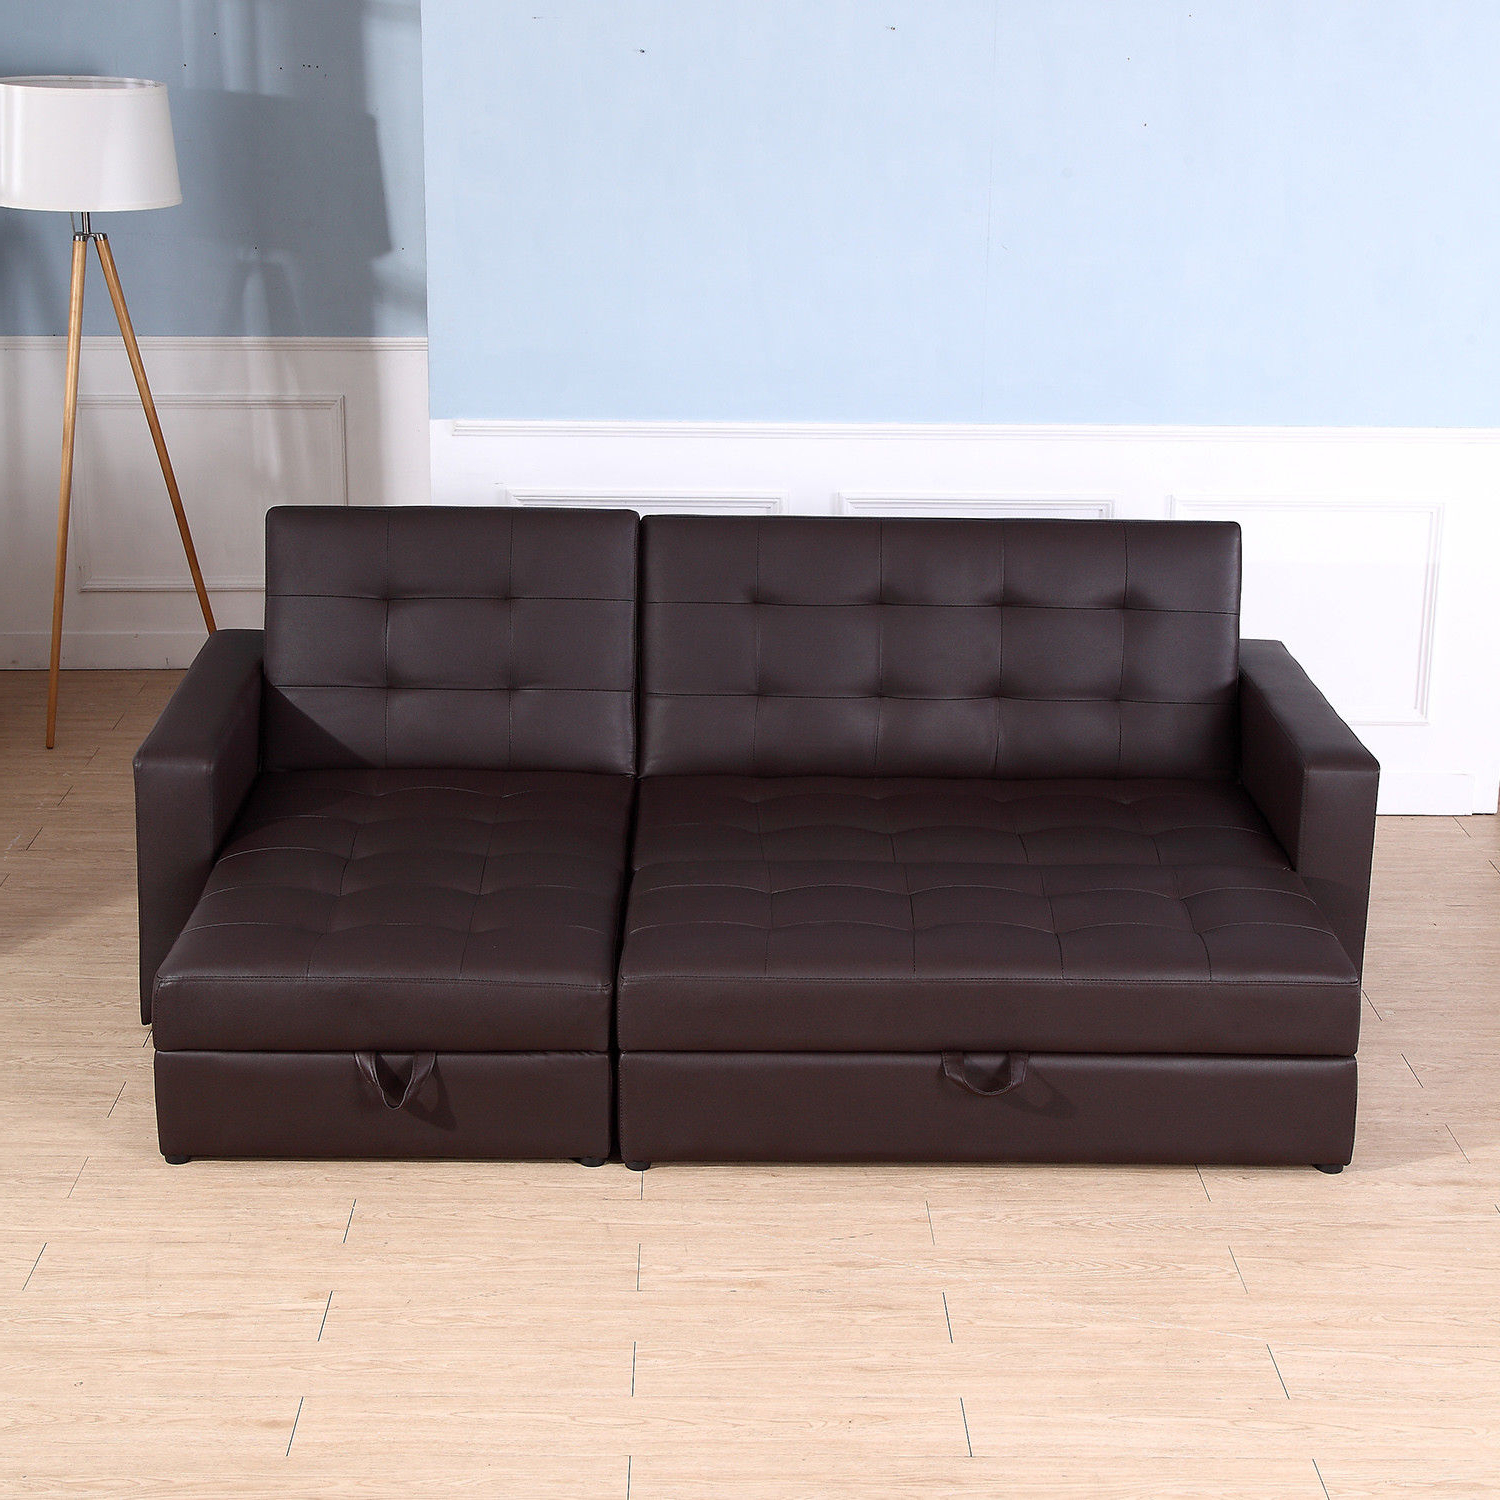 Sofa Bed Storage Sleeper Chaise Loveseat Couch Sectional Throughout 2017 Celine Sectional Futon Sofas With Storage Reclining Couch (View 3 of 25)